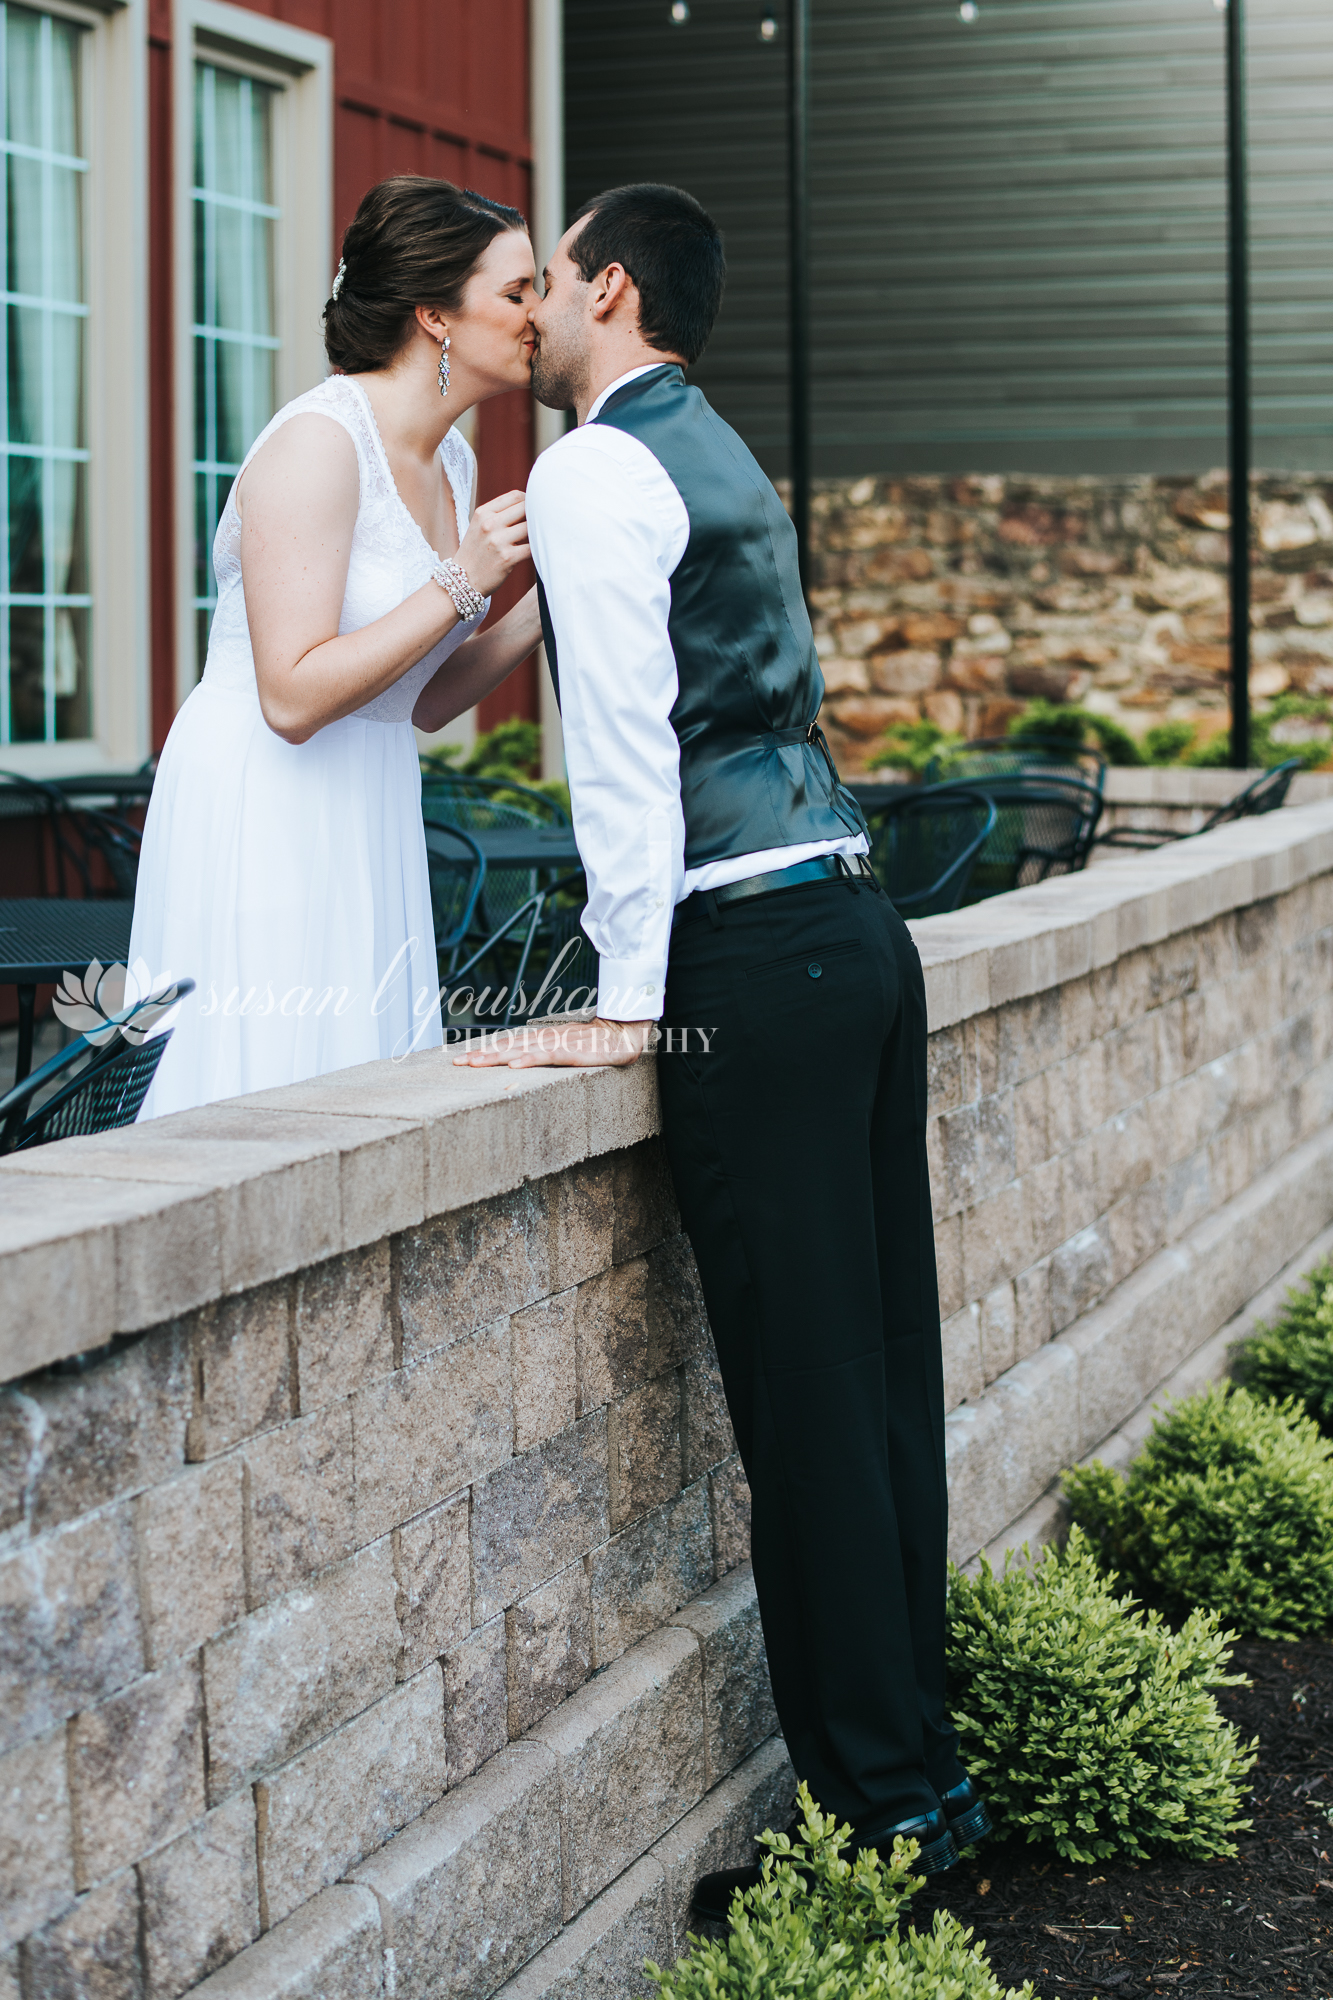 Adena and  Erik Wedding 05-17-2019 SLY Photography-81.jpg